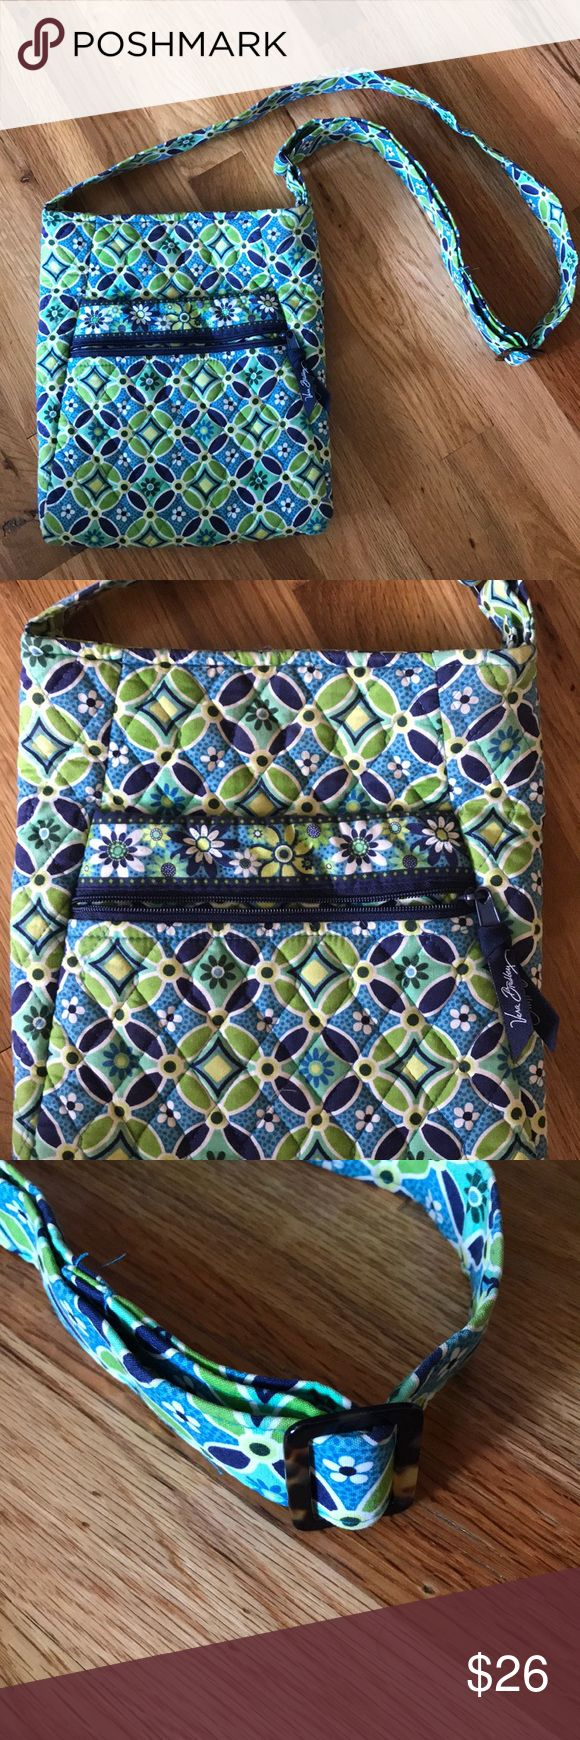 Vera Bradley Crossbody - excellent condition! Fun Blue and green pattern throughout. Adjustable strap. Cute tortoise print detail on the adjusters.open pocket on the inside. Zip closure. 1 open pocket and 1 zipped pocket on the outside. Vera Bradley Bags Crossbody Bags